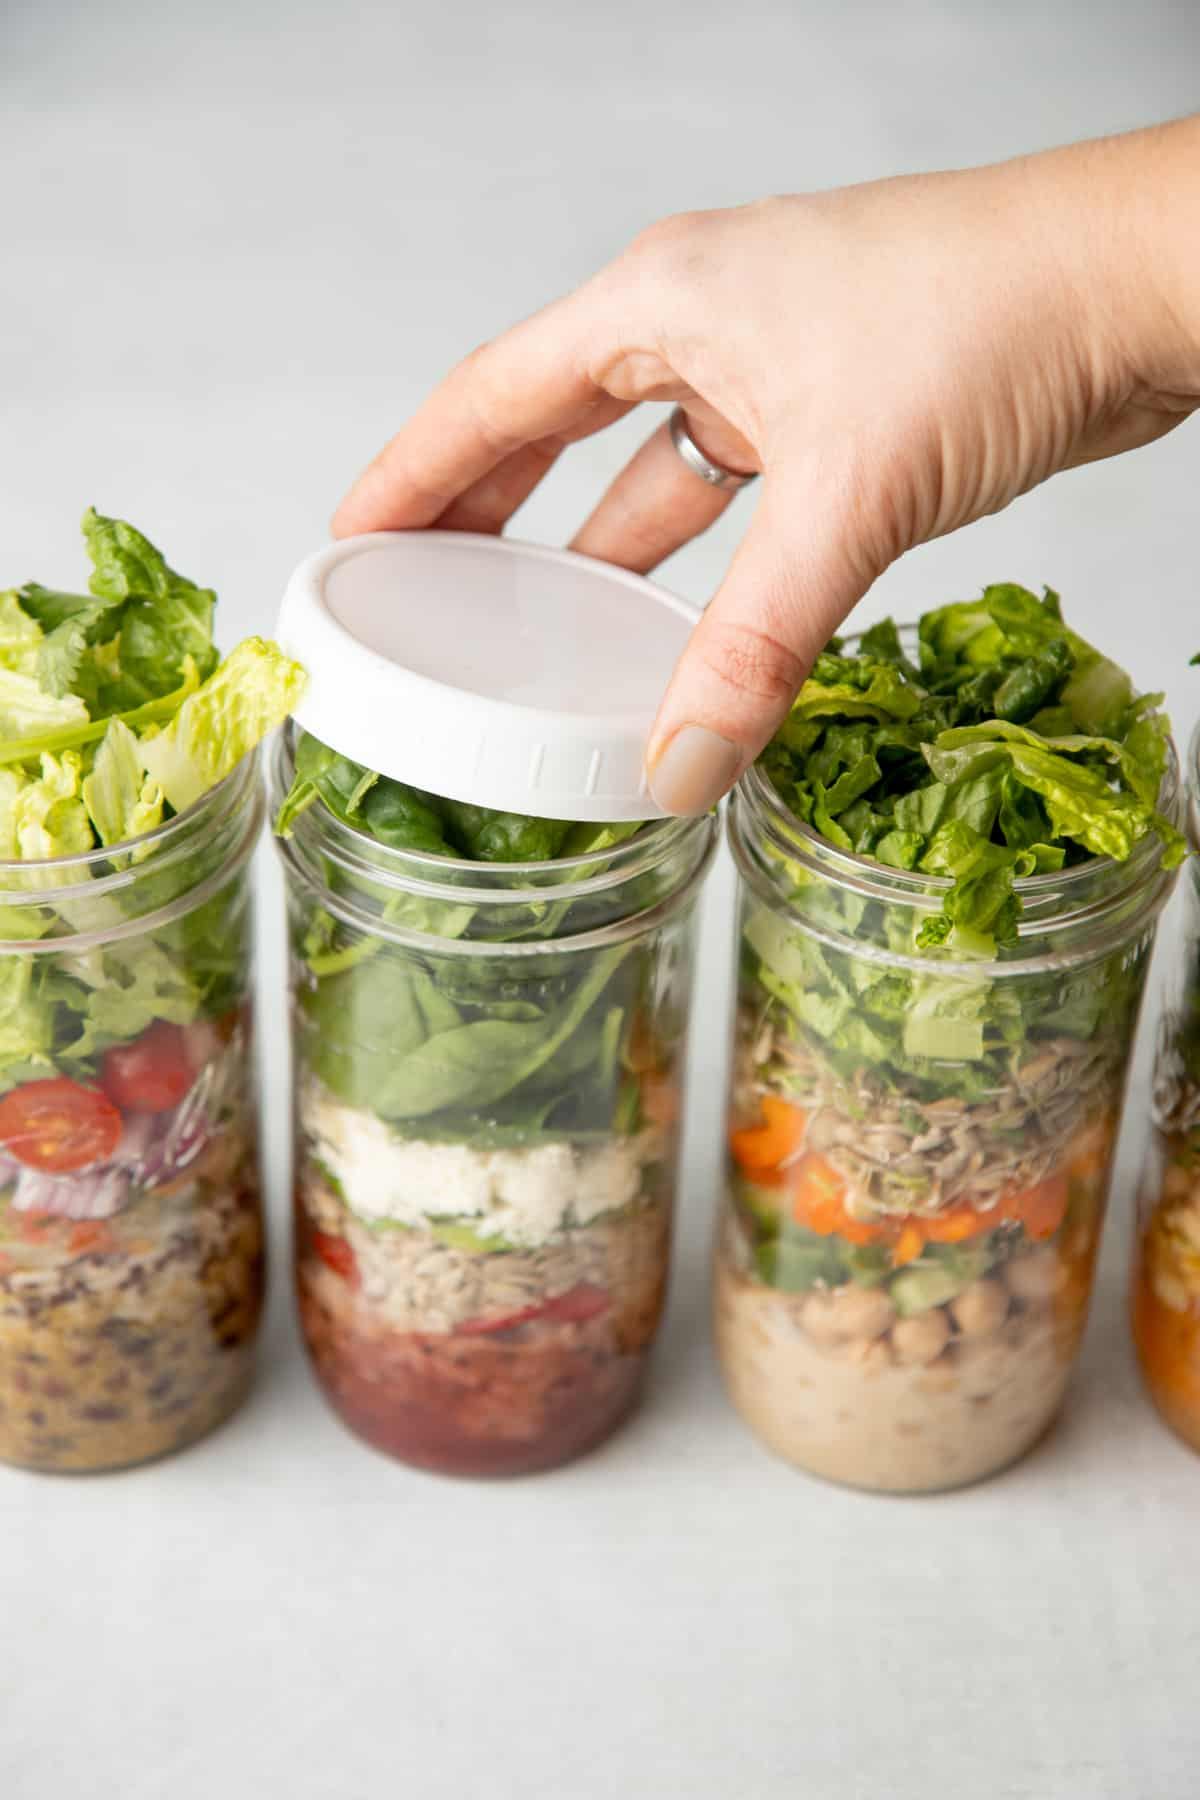 Three tall mason jars are layered with salad ingredients. A hand places a white lid on the middle jar.